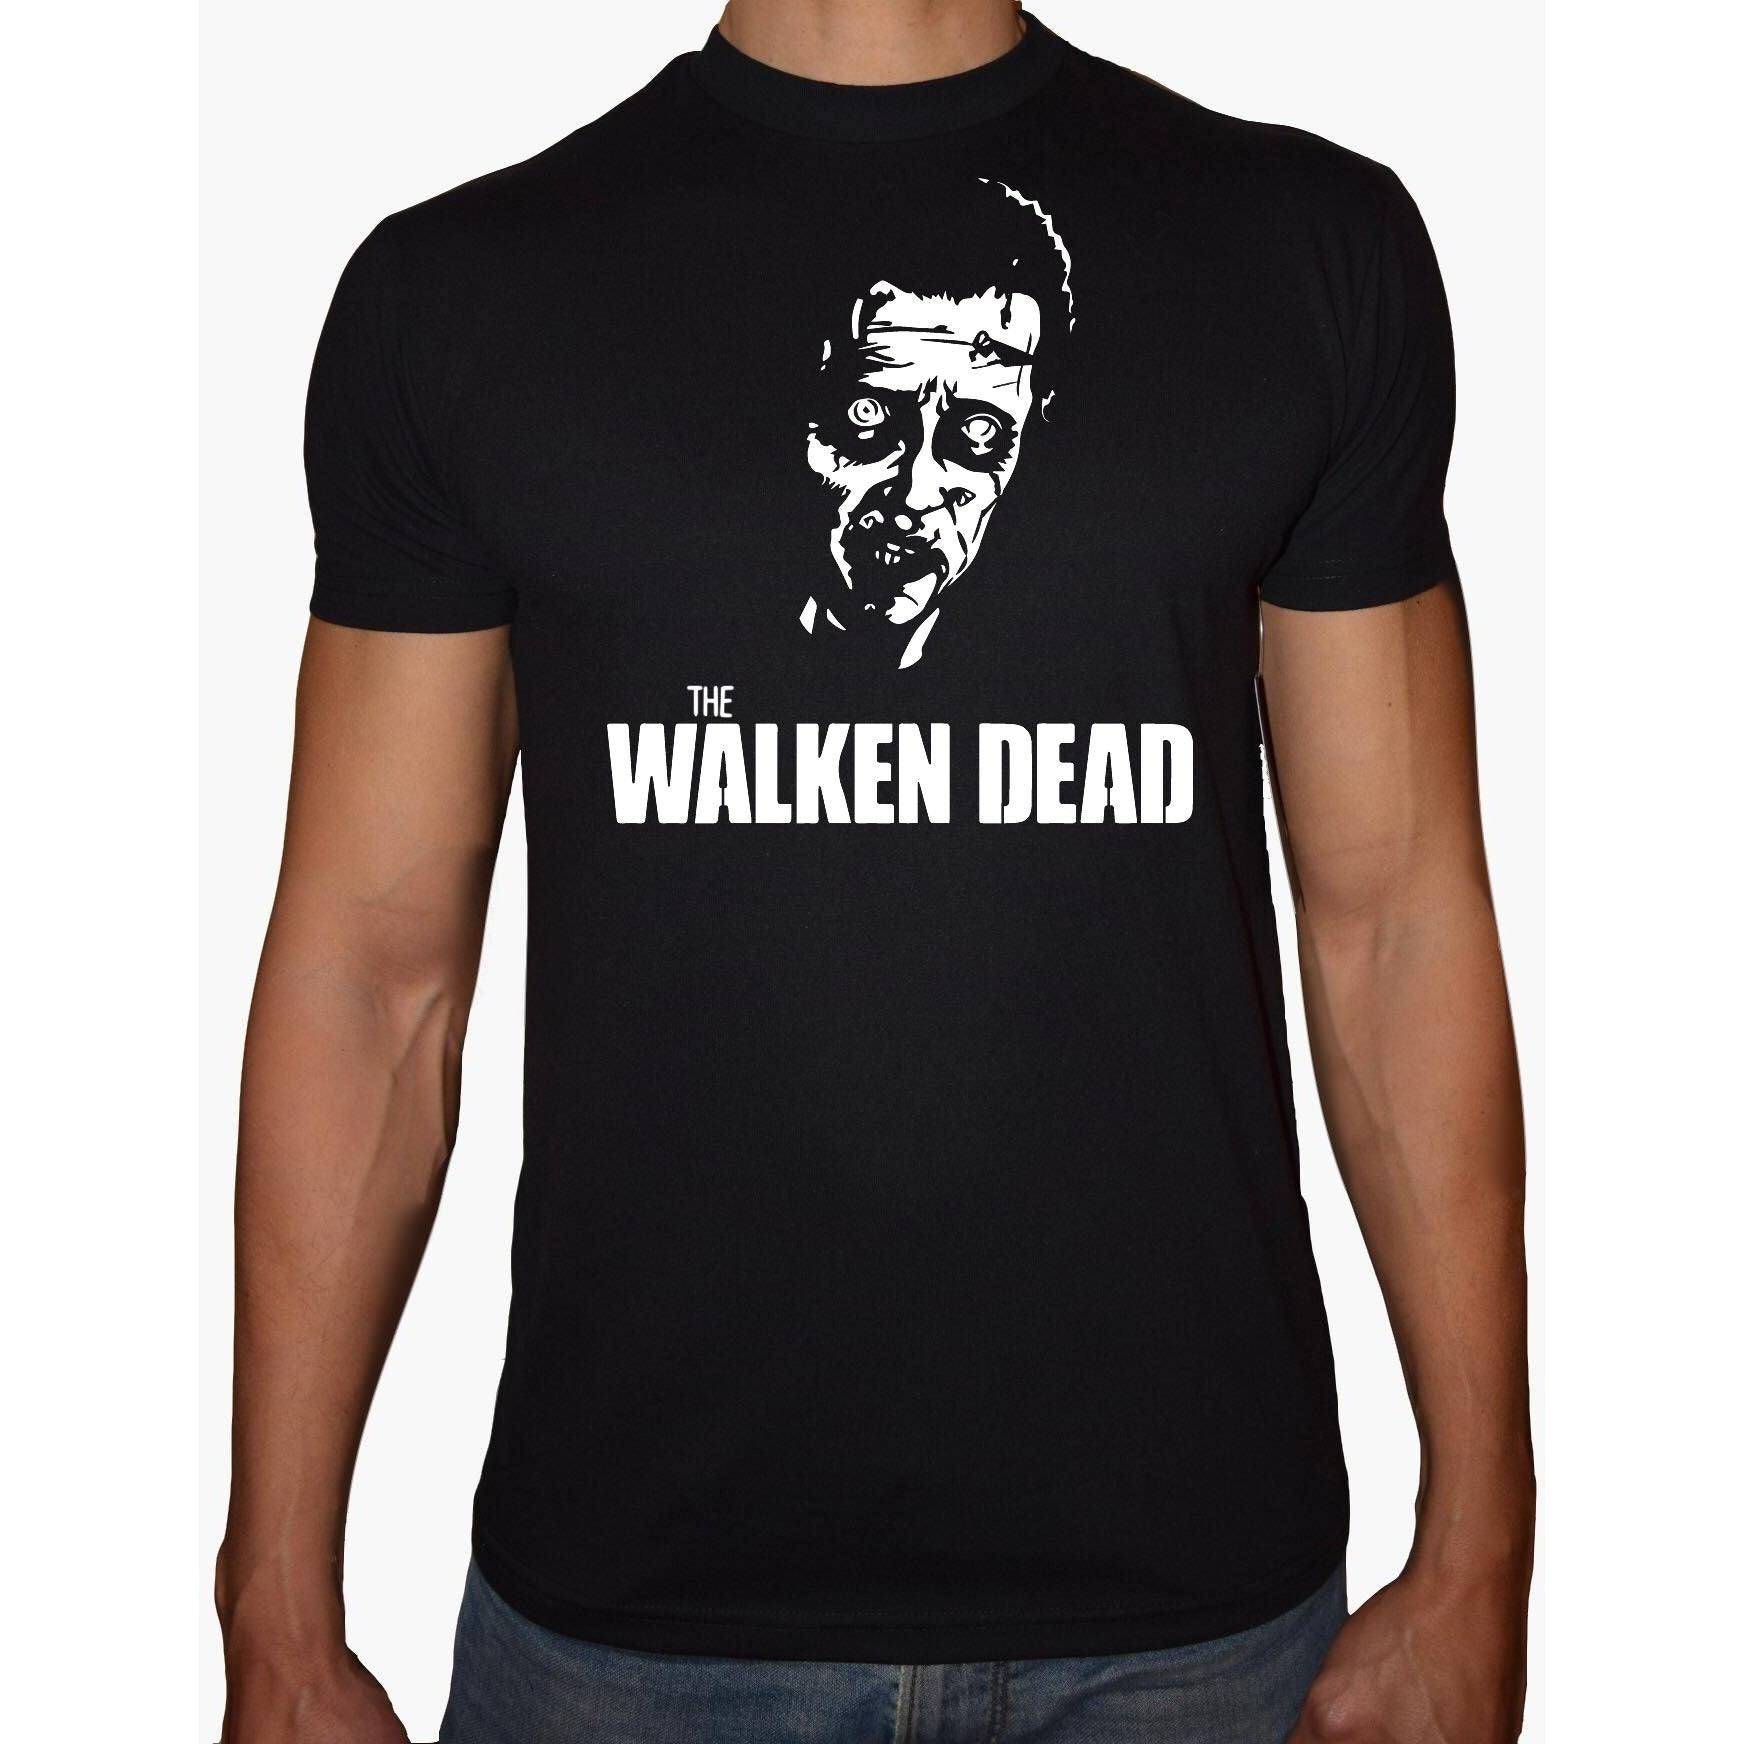 Phoenix BLACK Round Neck Printed T-Shirt Men (The walking dead)